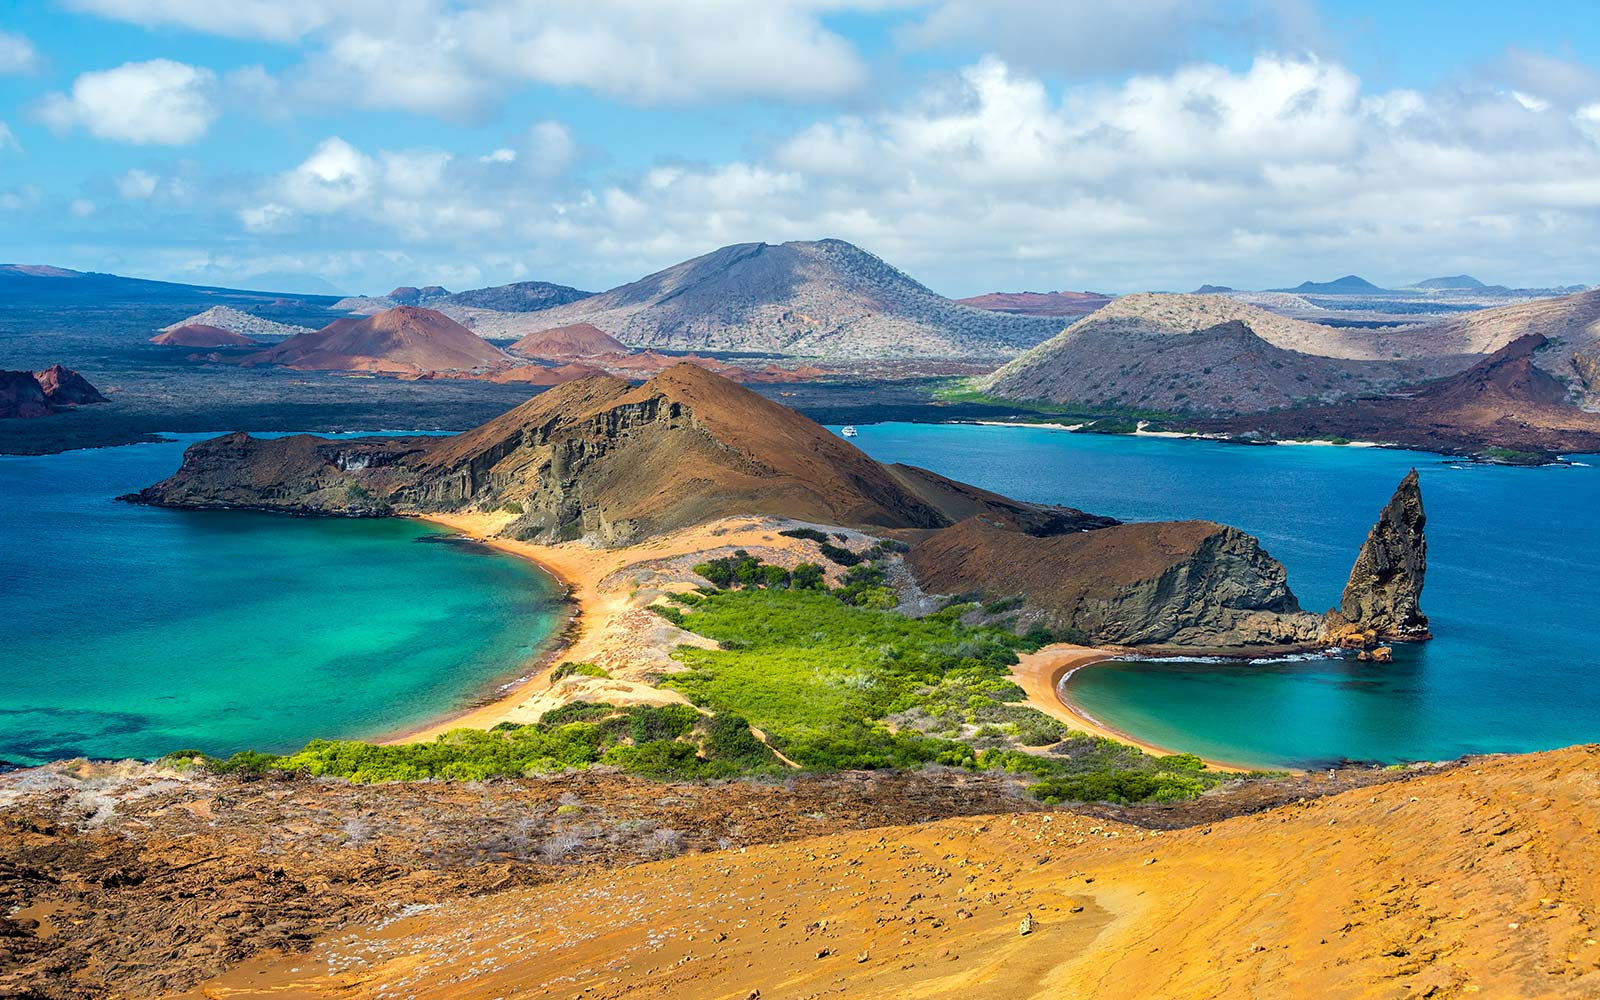 Galápagos National Park — What to See